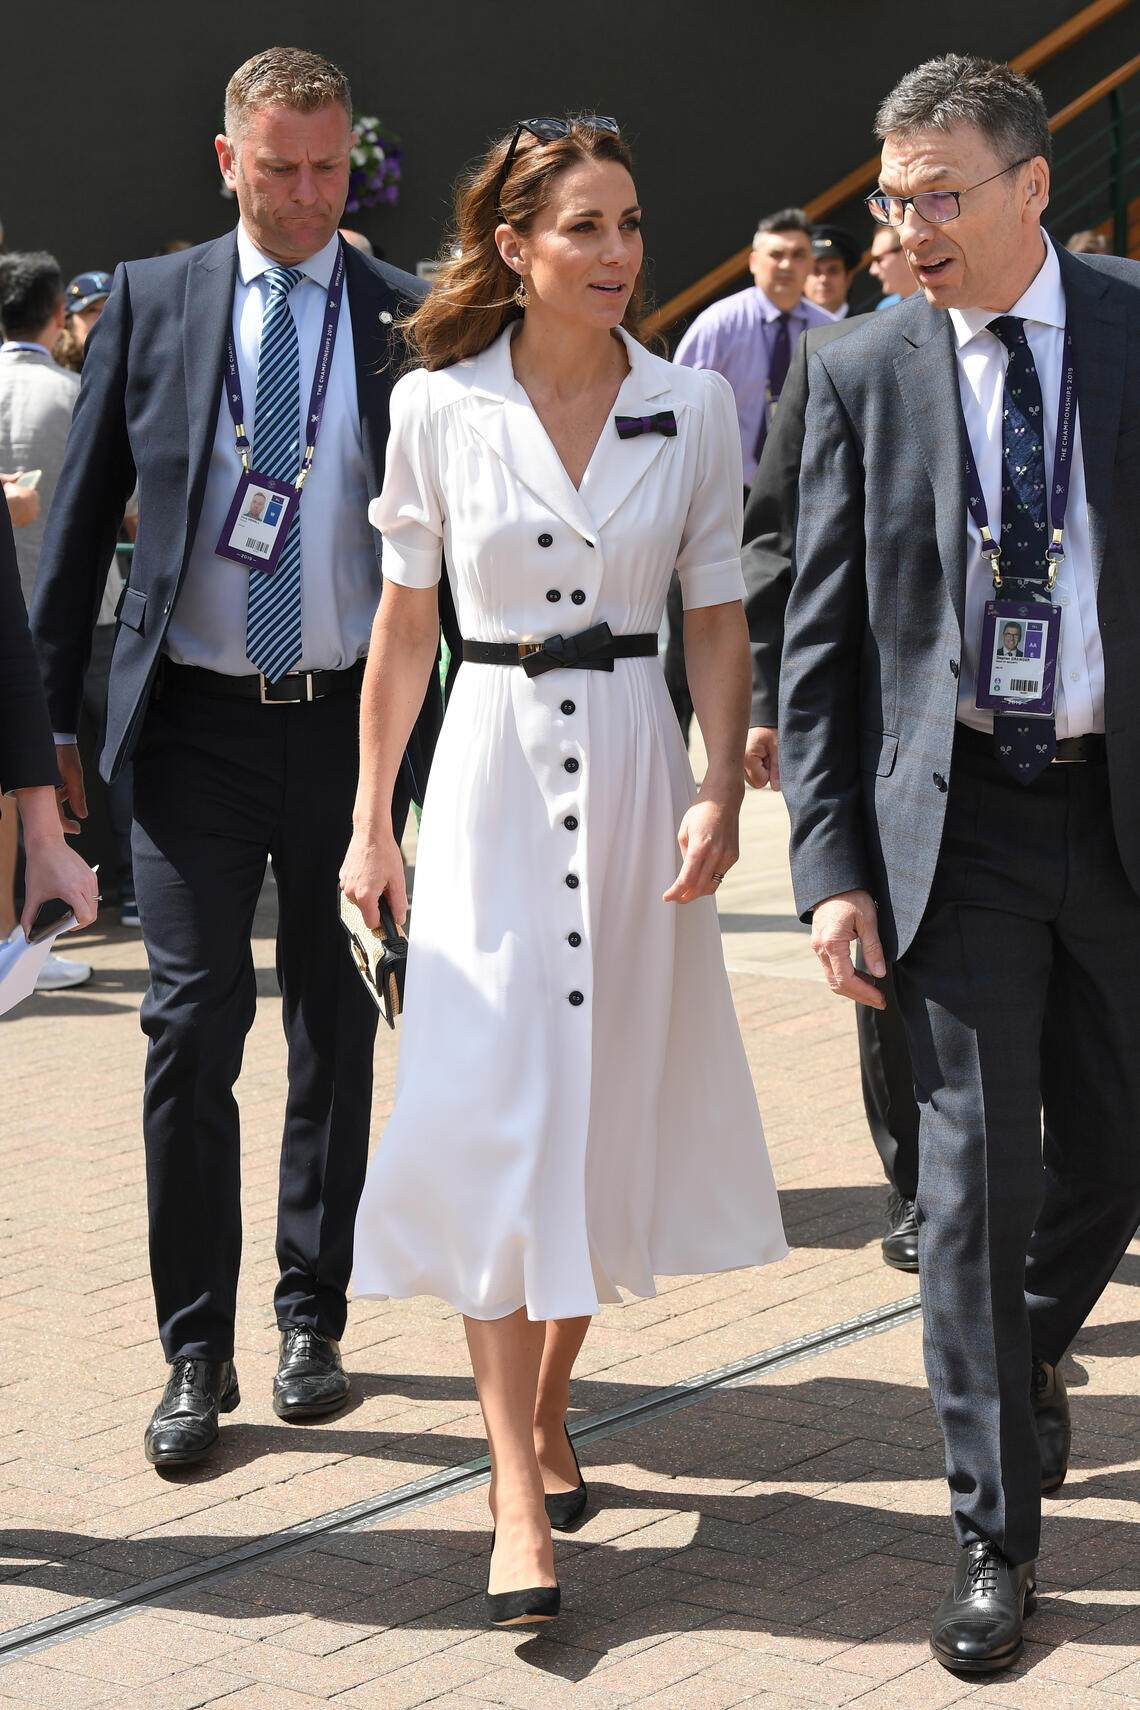 LONDON, ENGLAND - JULY 02: Catherine, Duchess of Cambridge attends day 2 of the Wimbledon Tennis Championships at the All England Lawn Tennis and Croquet Club on July 02, 2019 in London, England. (Photo by Karwai Tang/Getty Images)